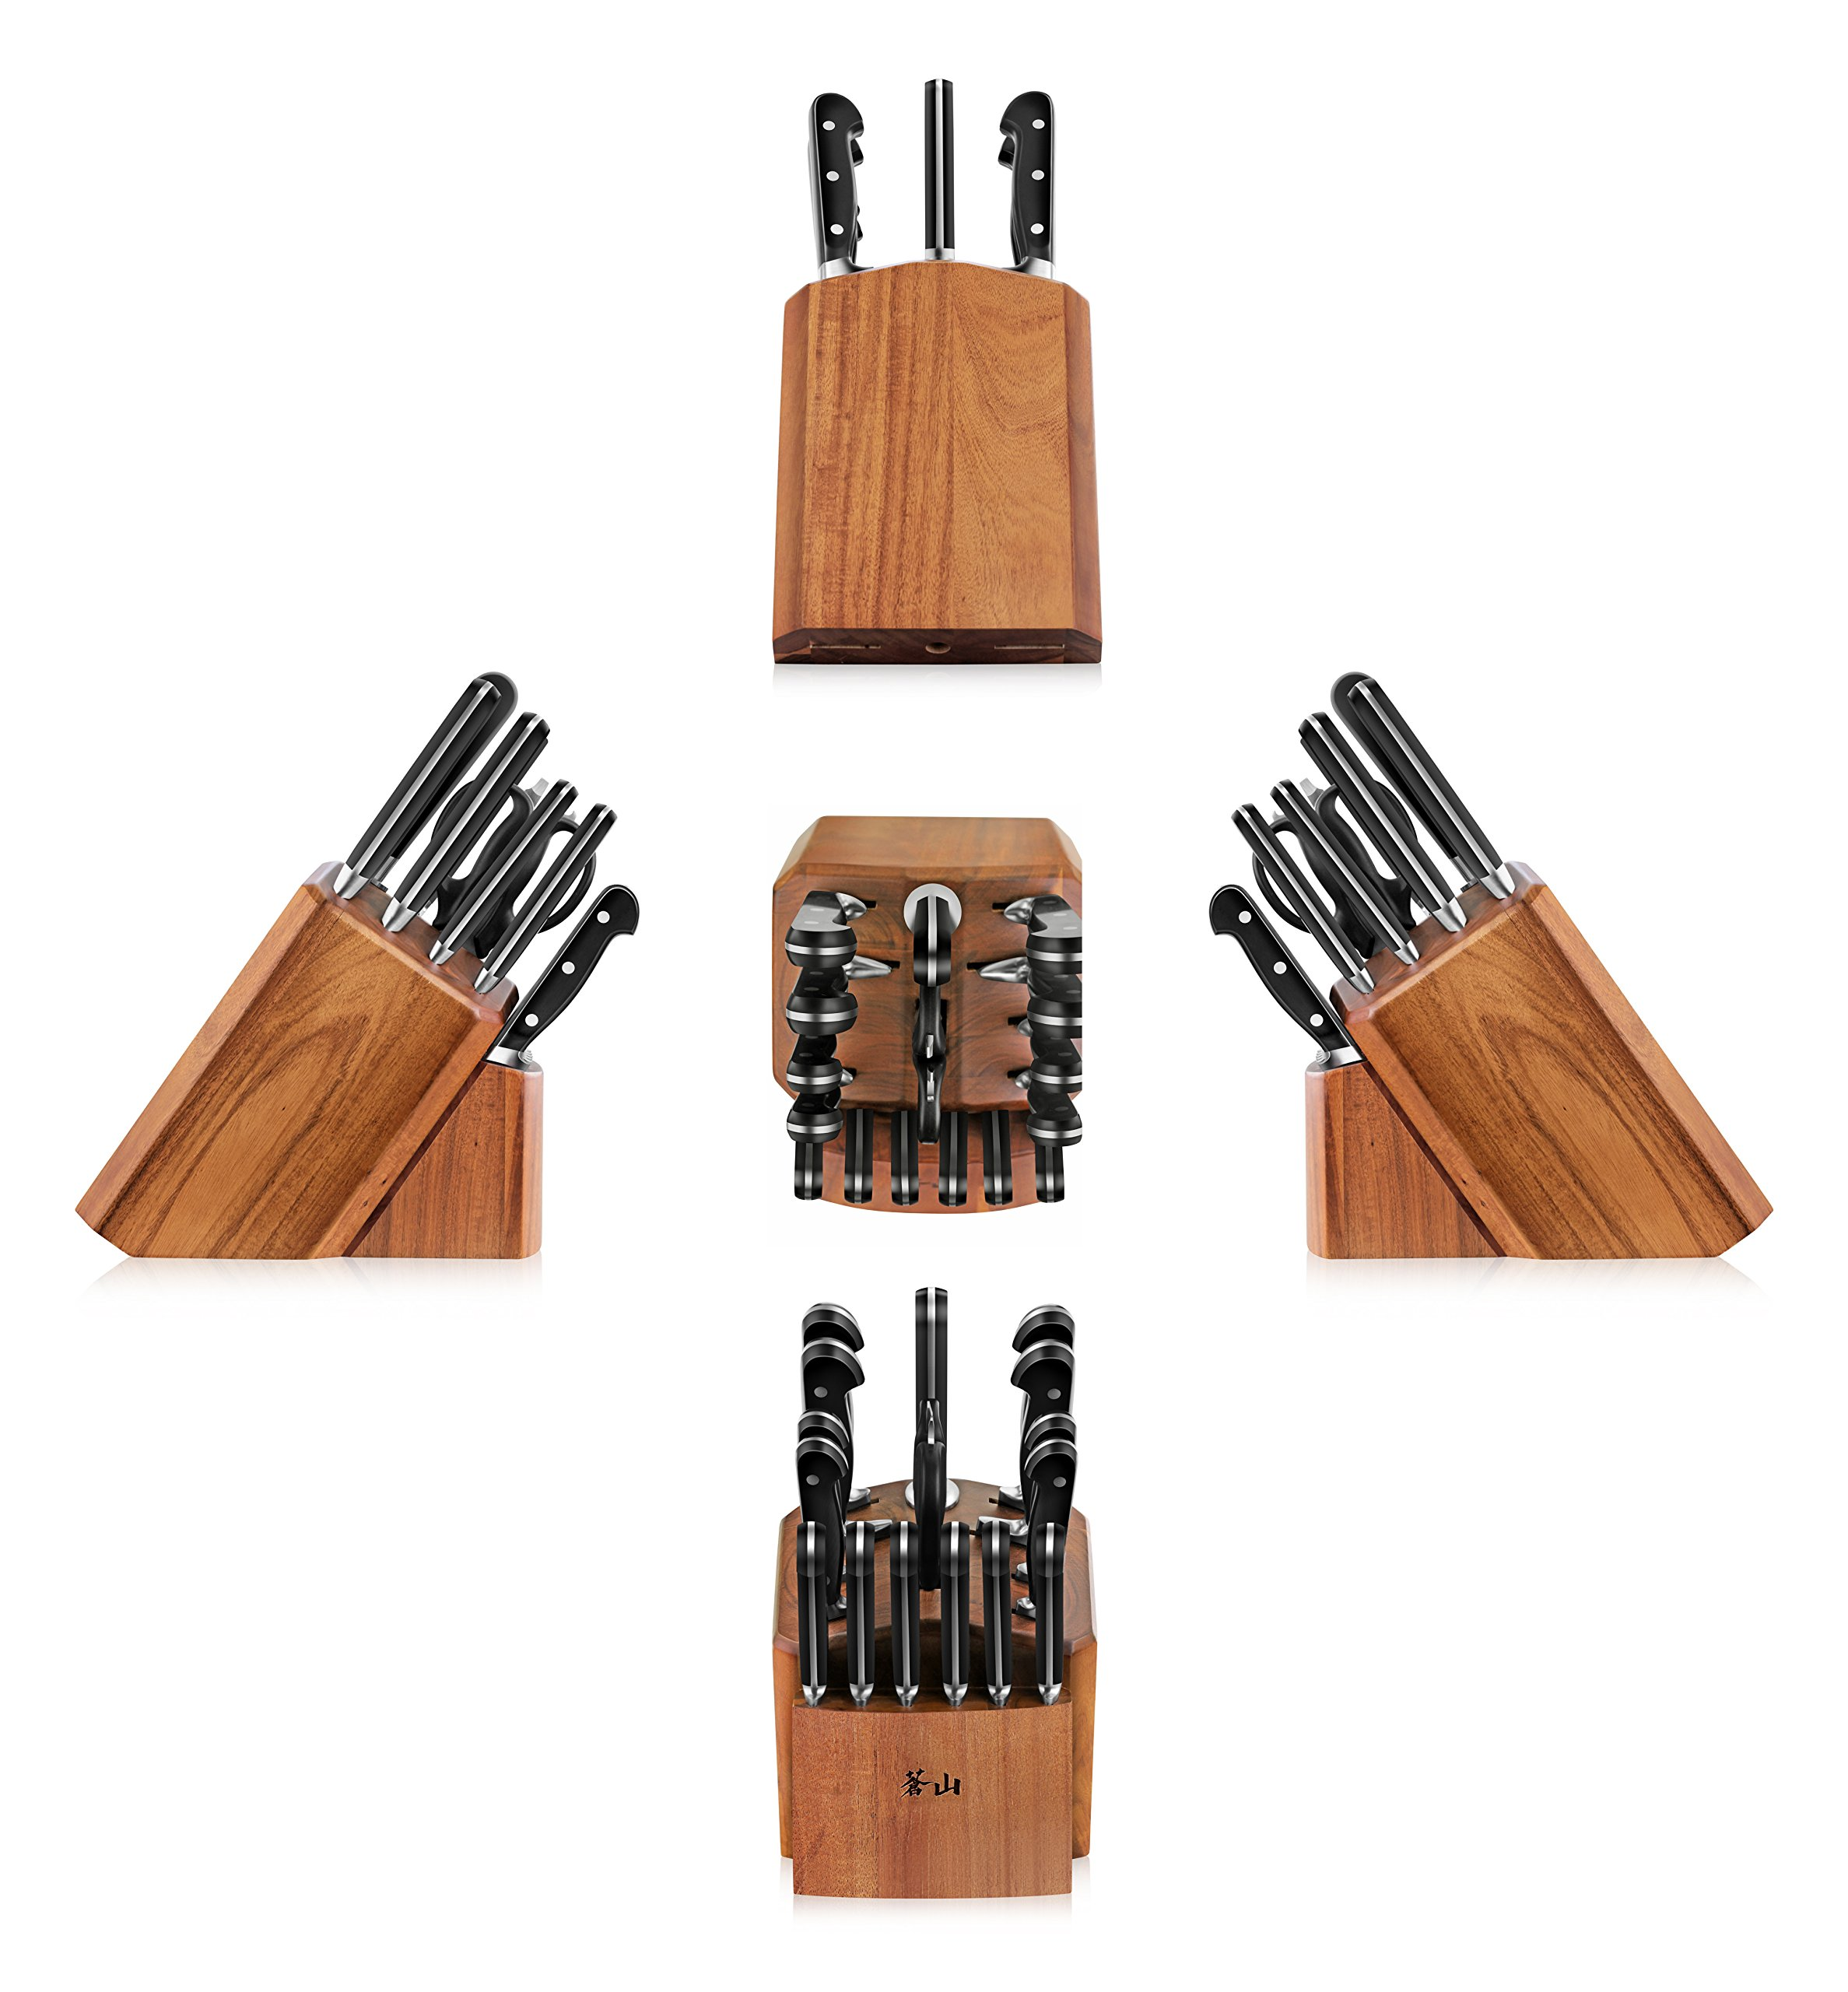 Cangshan V2 Series 1022551 German Steel Forged 17-Piece Knife Block Set , Acacia by Cangshan (Image #7)